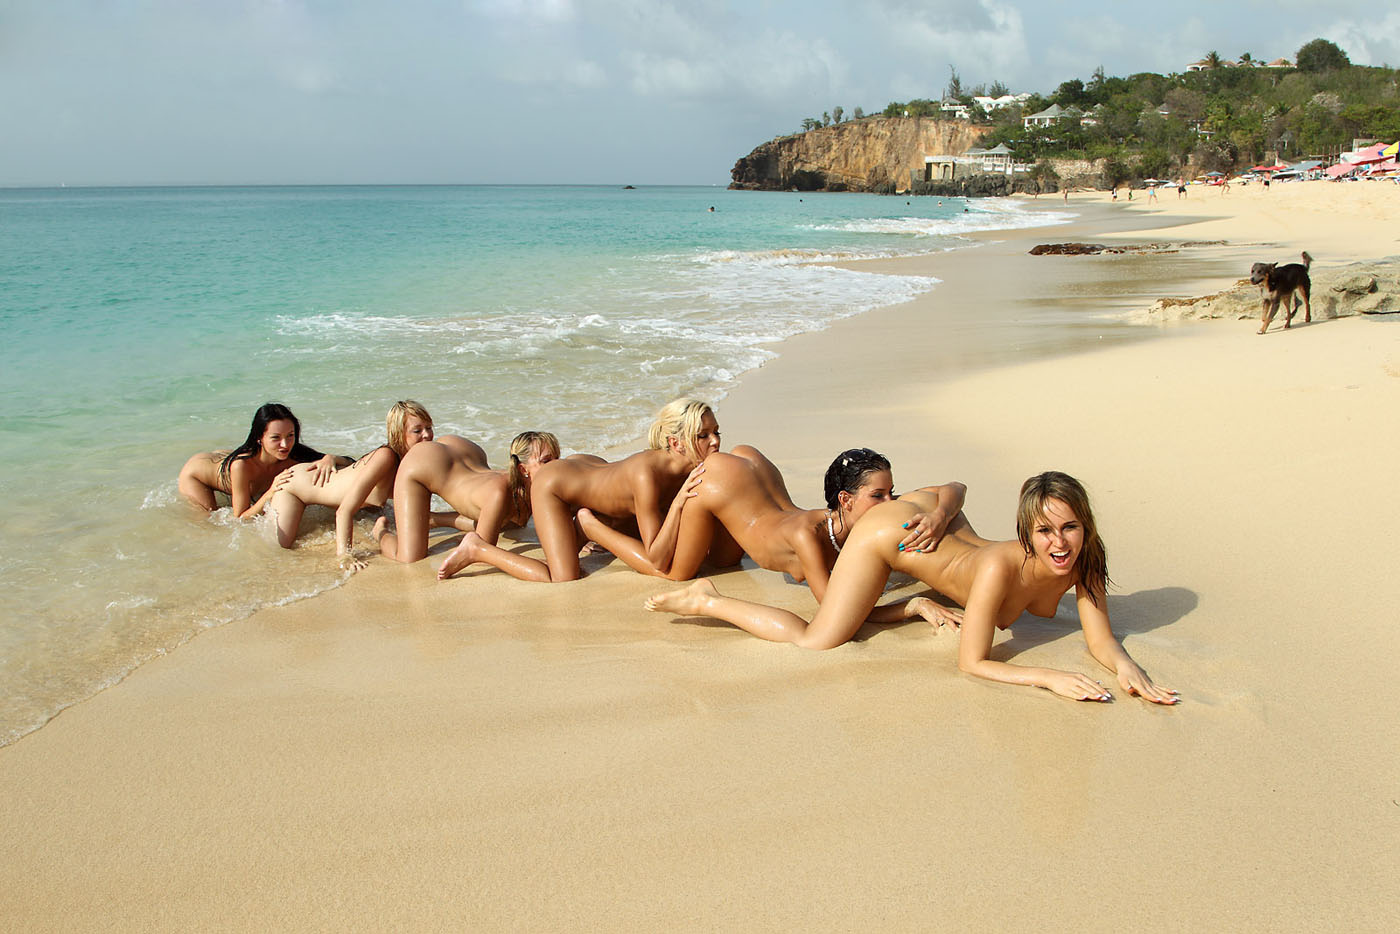 Wild girls on beach playing